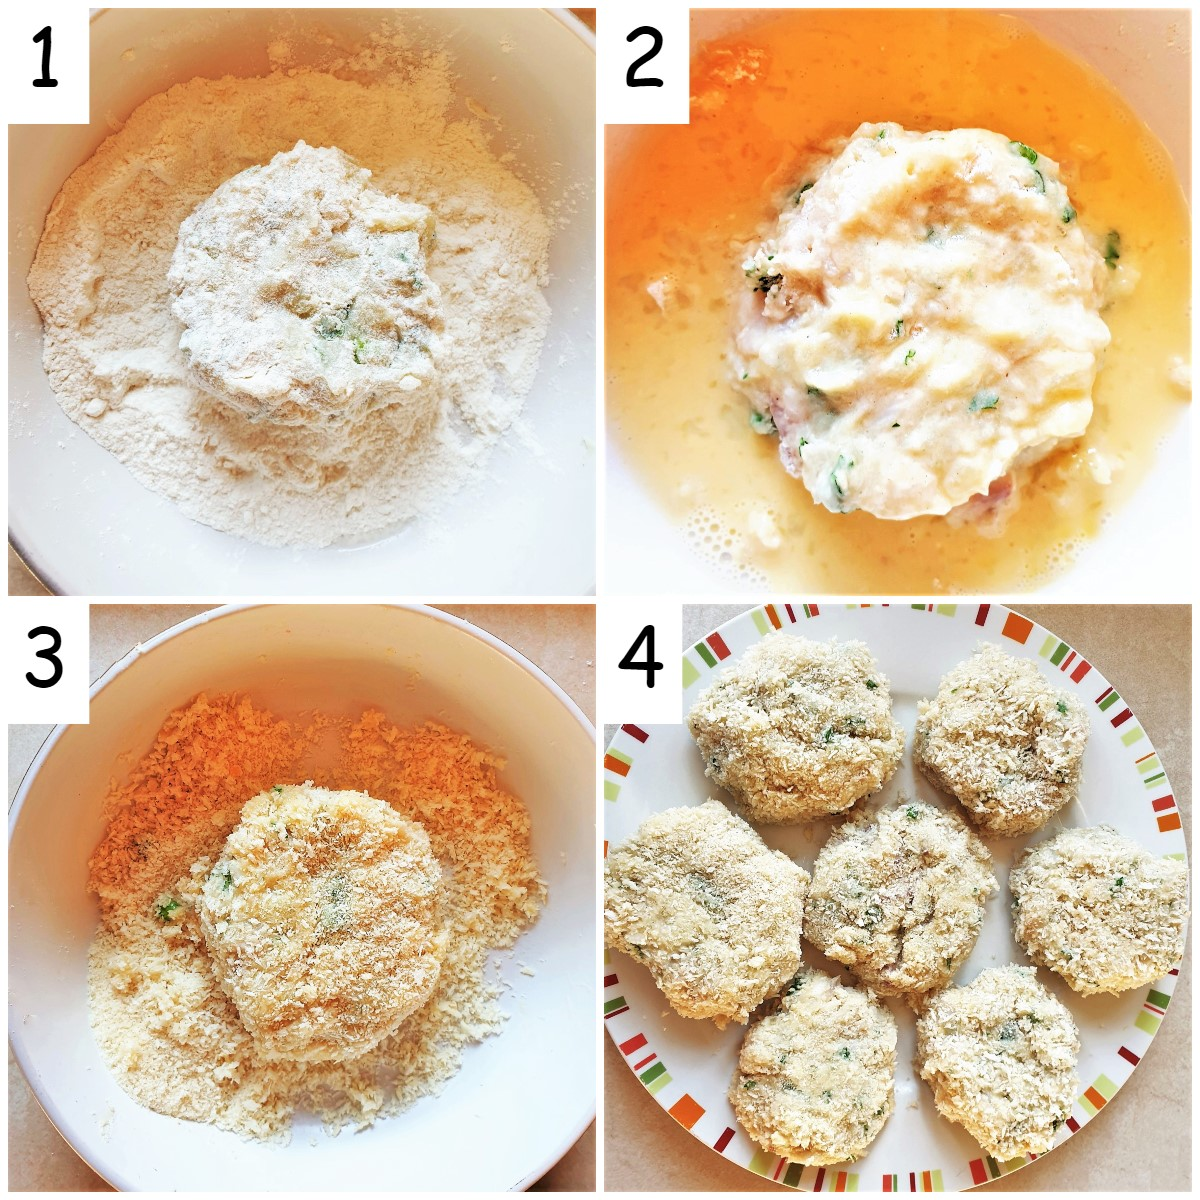 A collage of 4 images showing steps for coating the fishcakes.